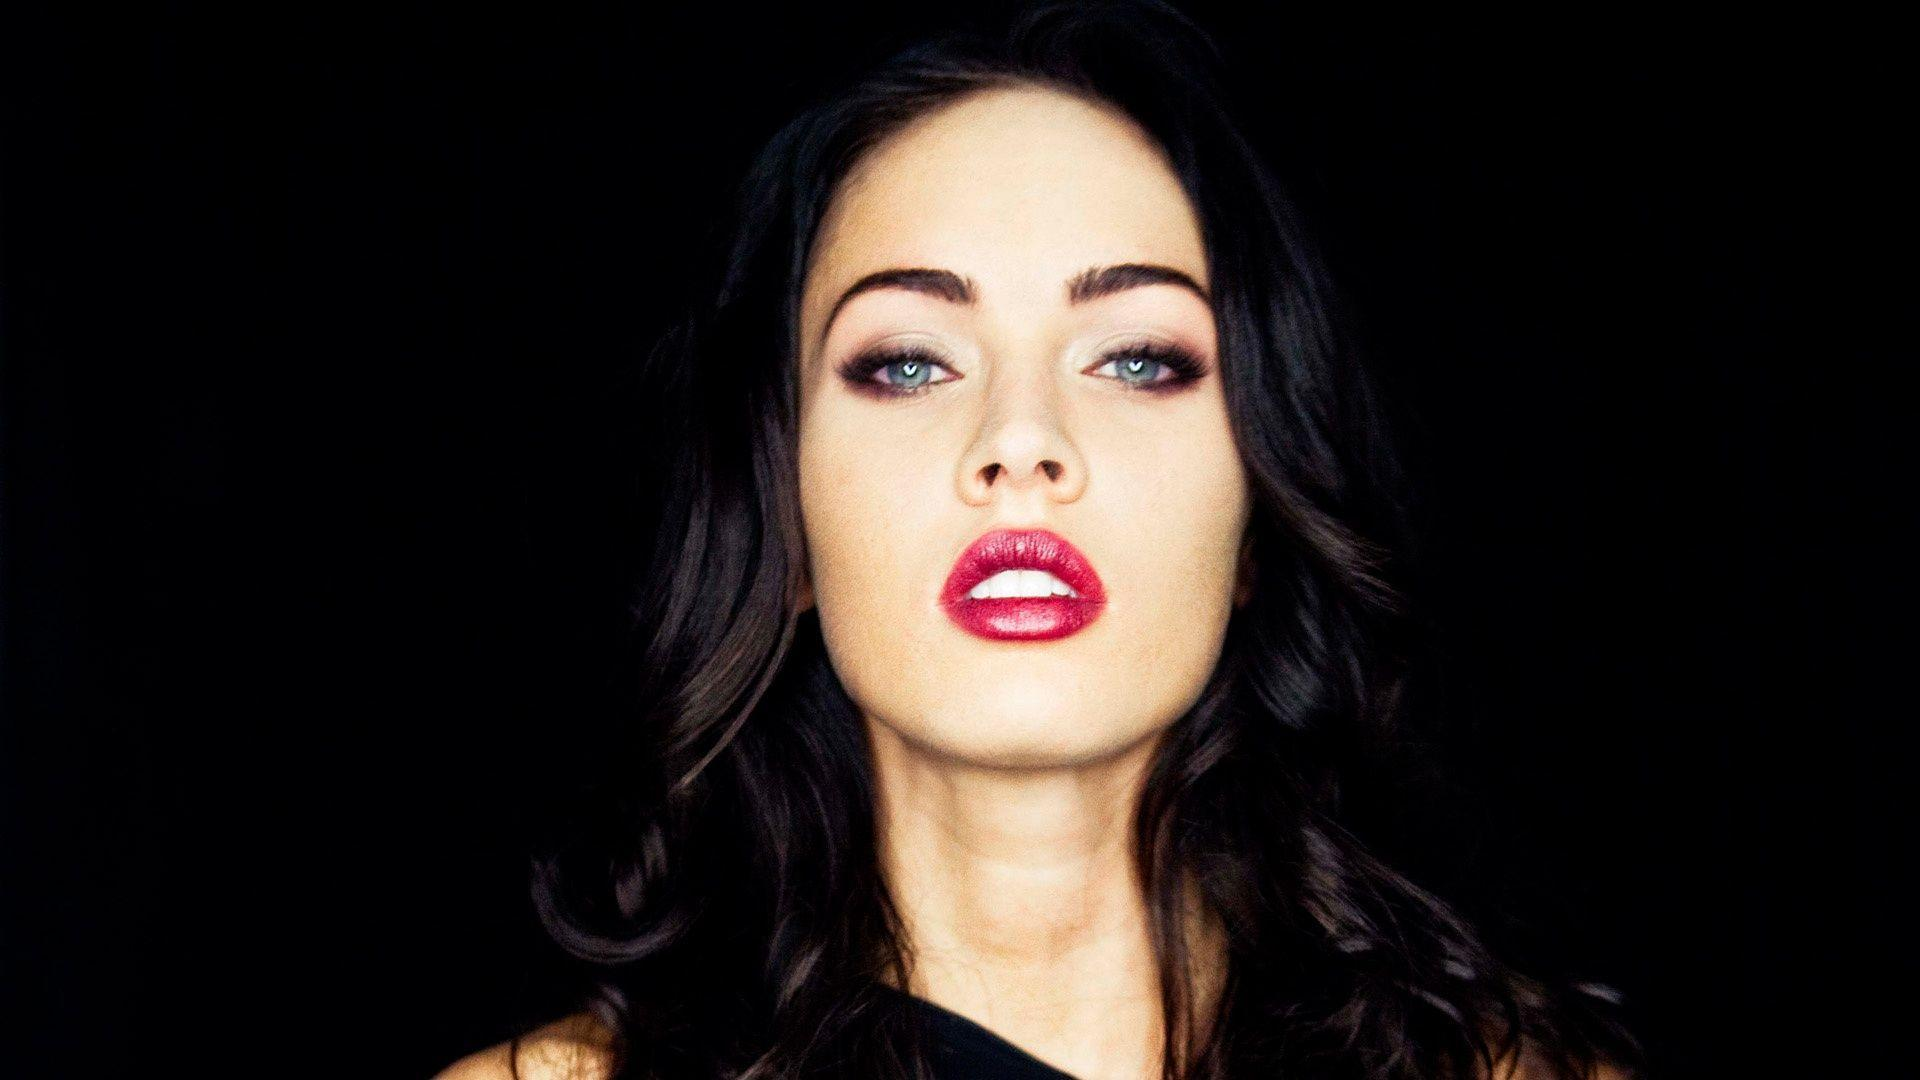 Wallpapers For > Megan Fox Wallpaper